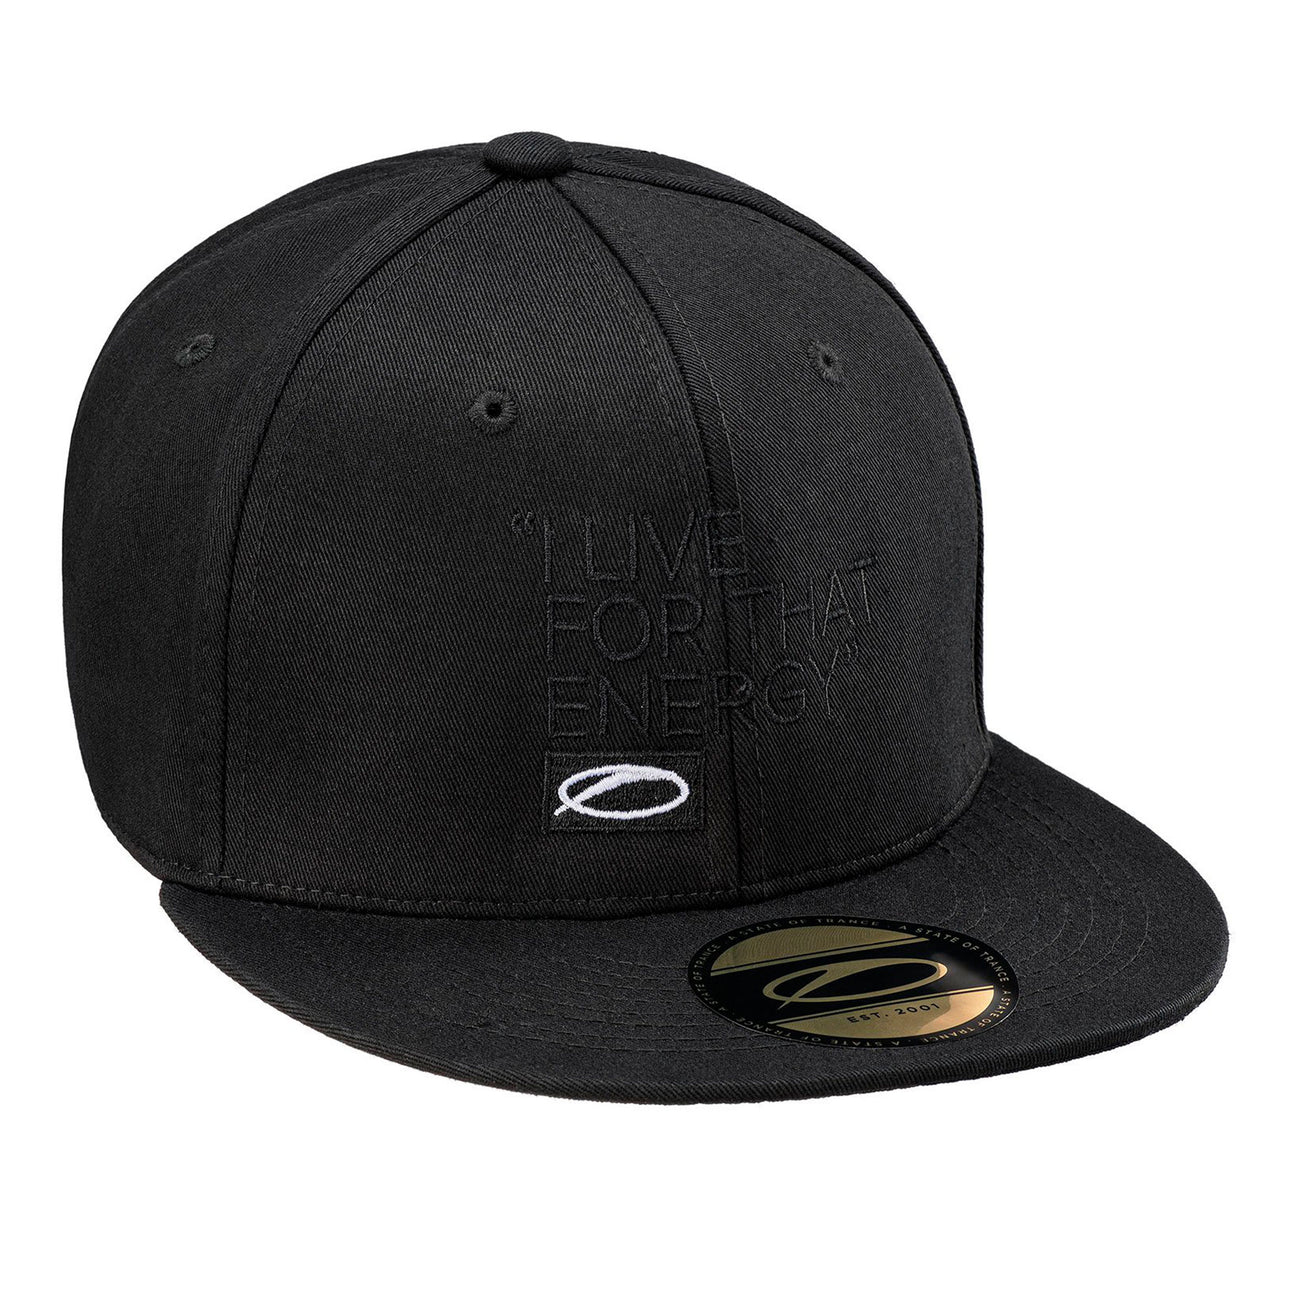 ASOT I Live For That Energy Snapback